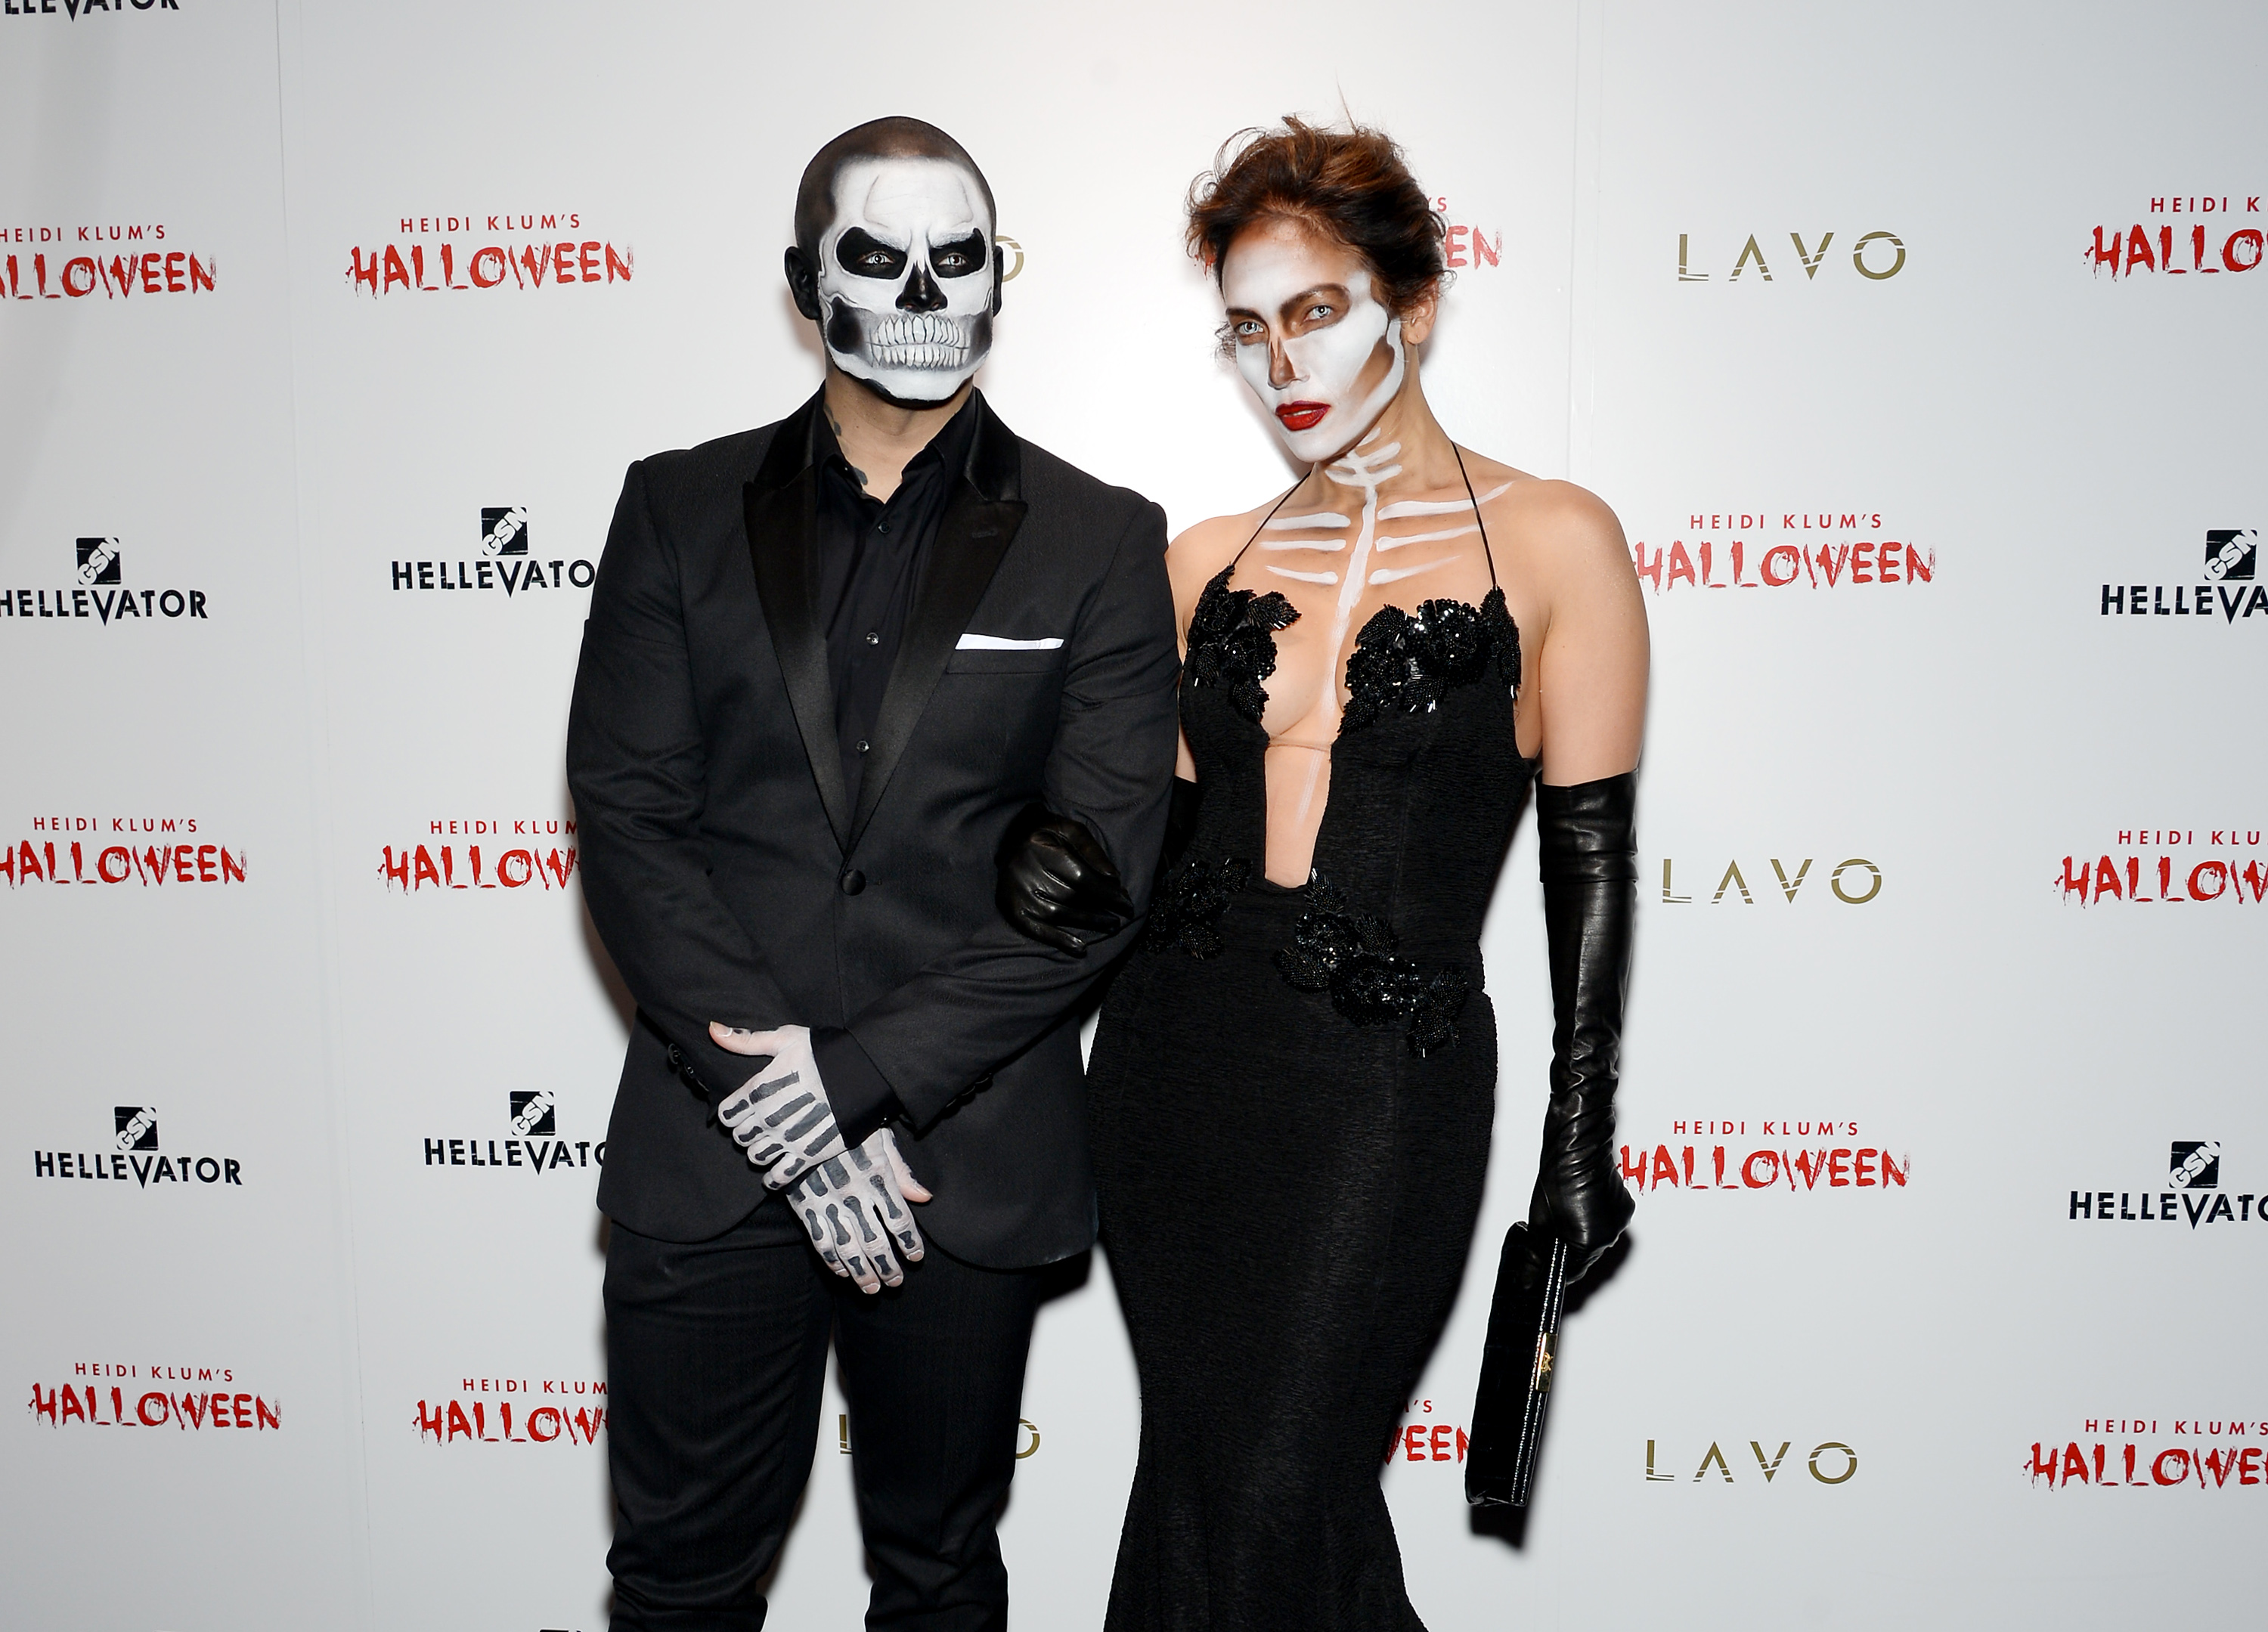 Heidi Klum Halloween Party - Arrivals